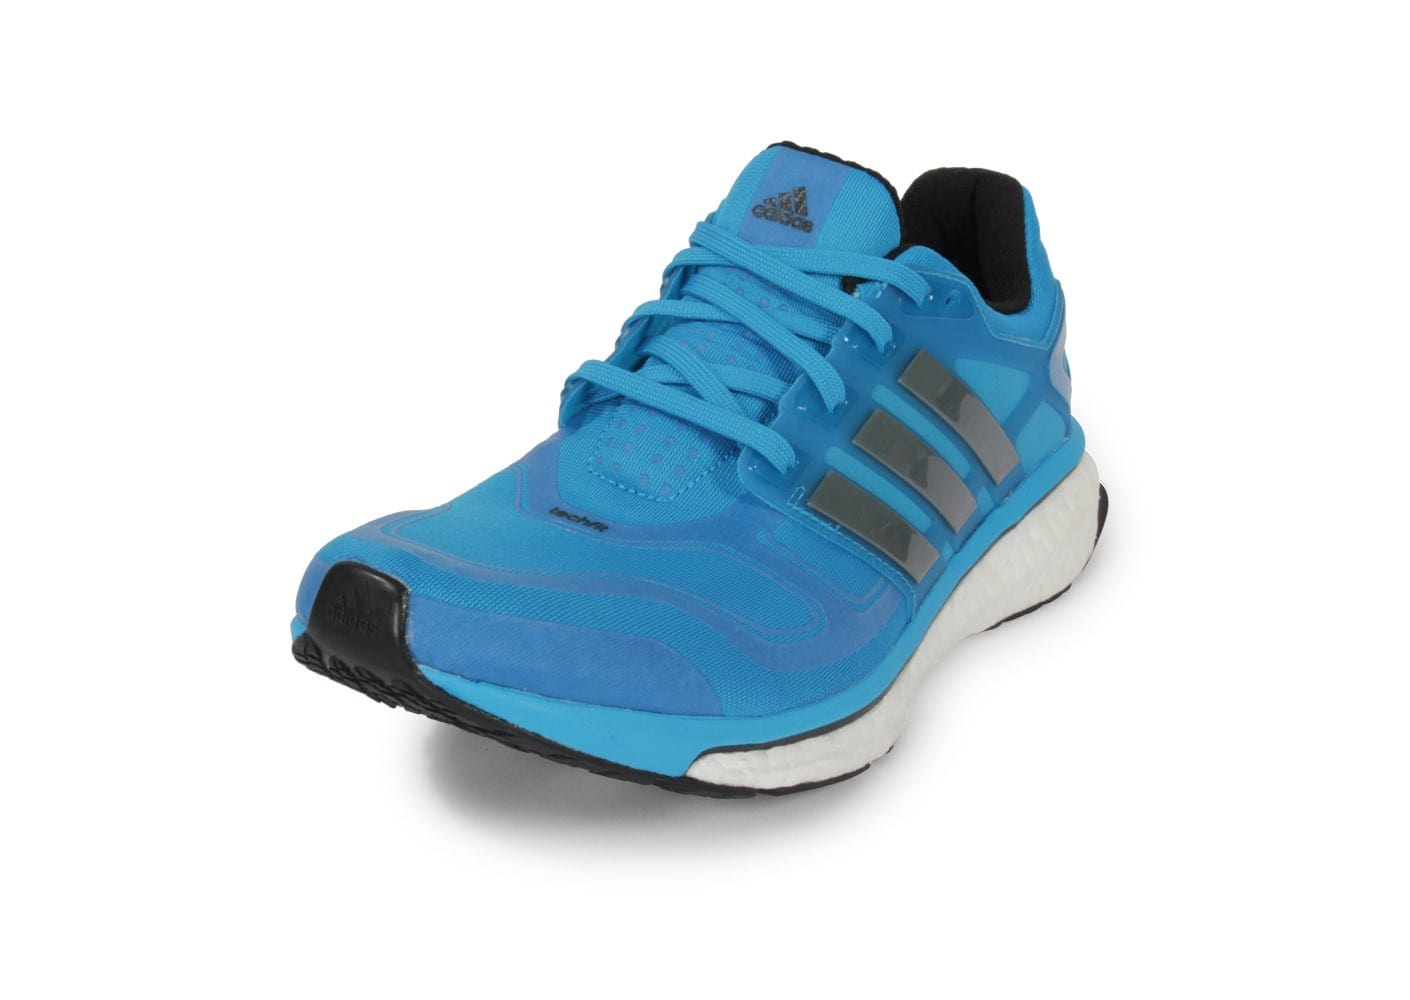 adidas Energy Boost Bleue Chaussures Baskets homme Chausport